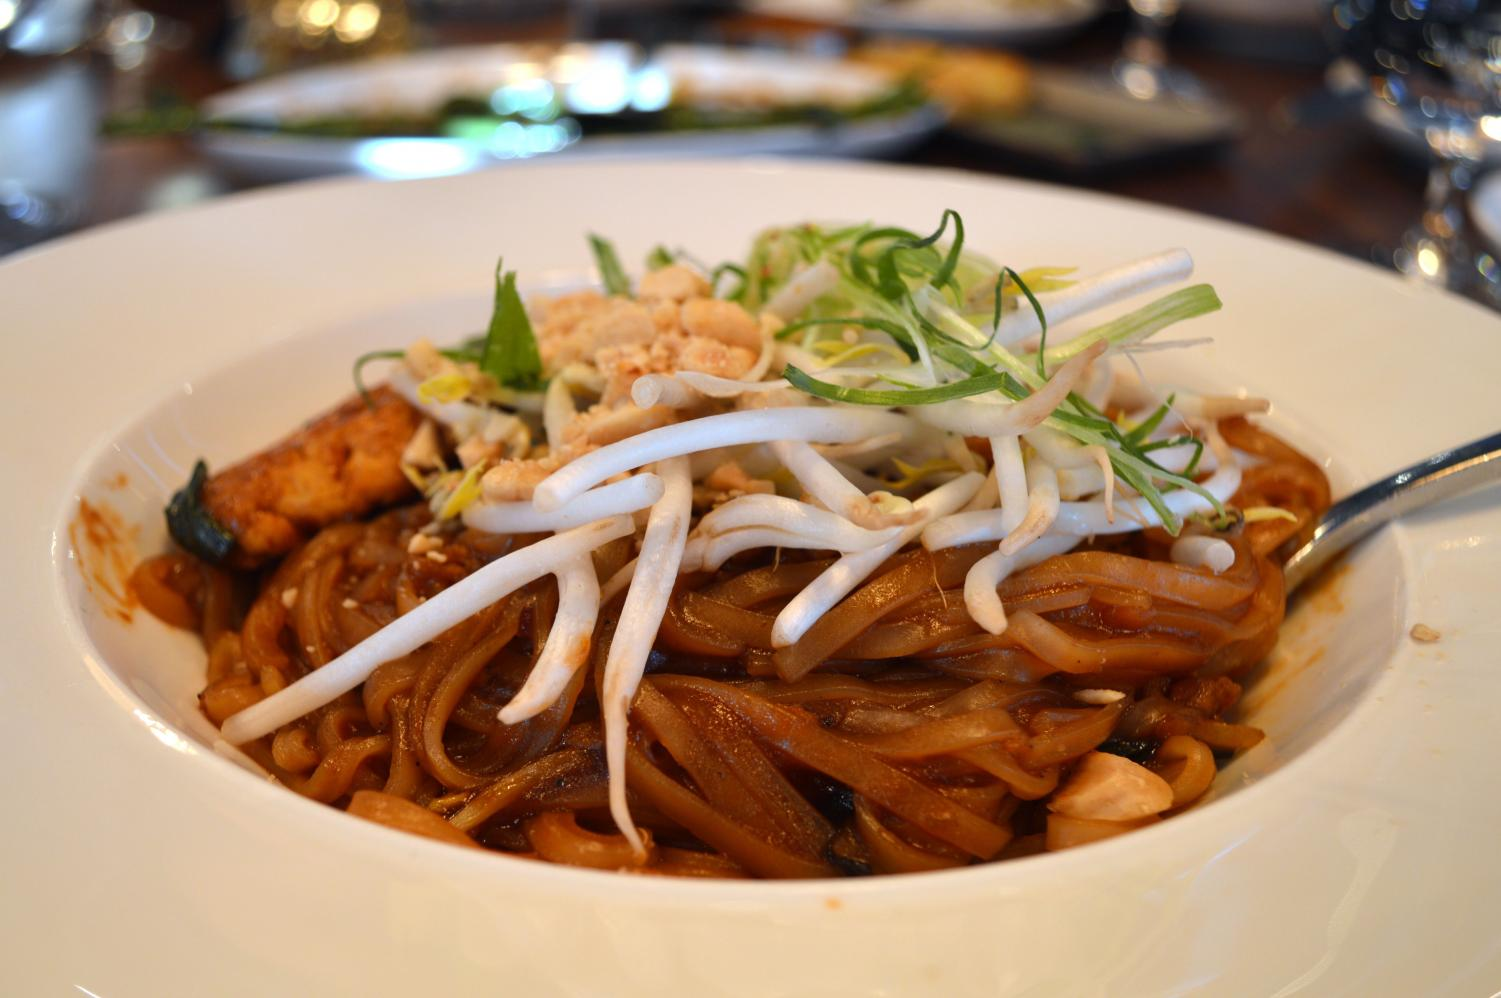 The vegetarian pad thai from Lat14 received the highest score with five stars.